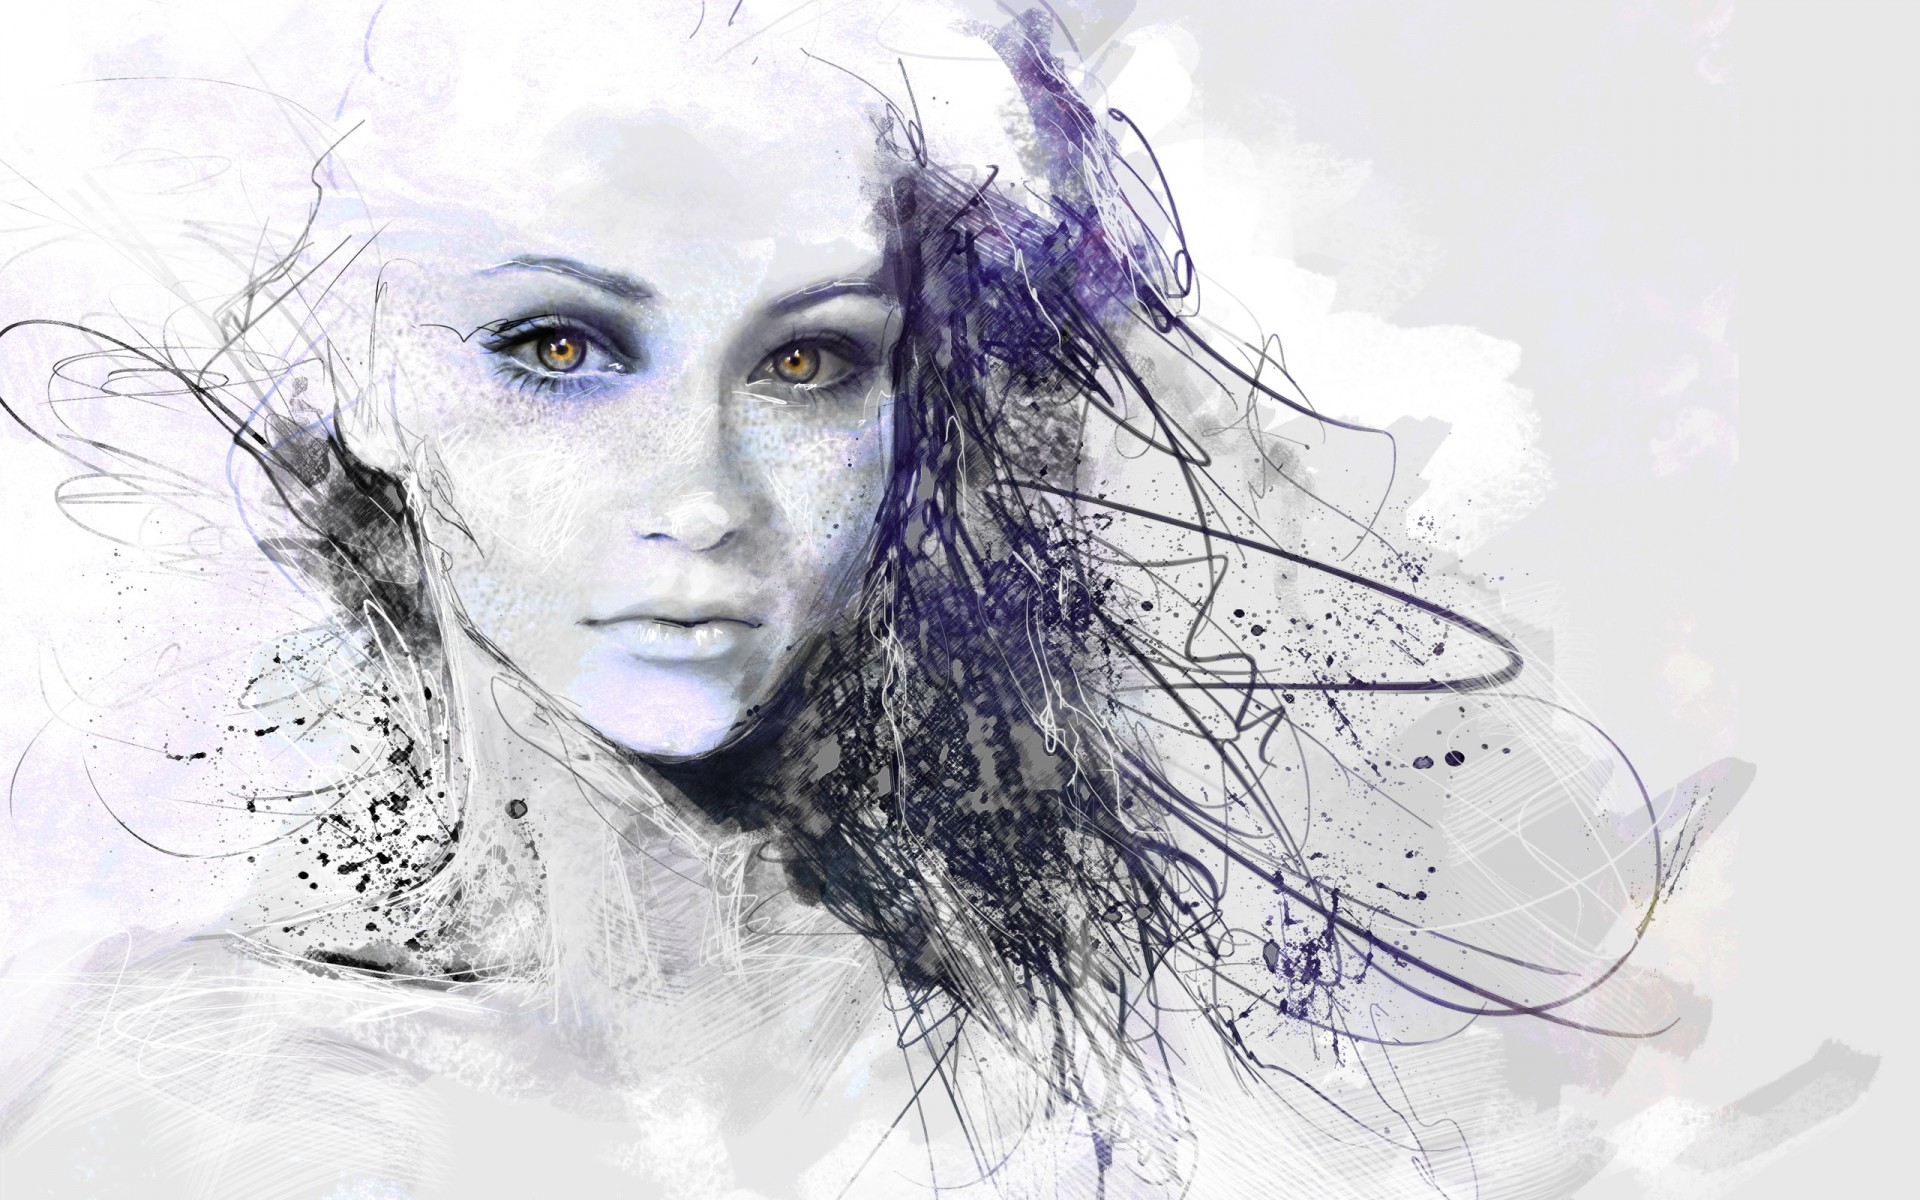 Girl face drawing abstract wallpapers girl face drawing - Sketch anime wallpaper ...